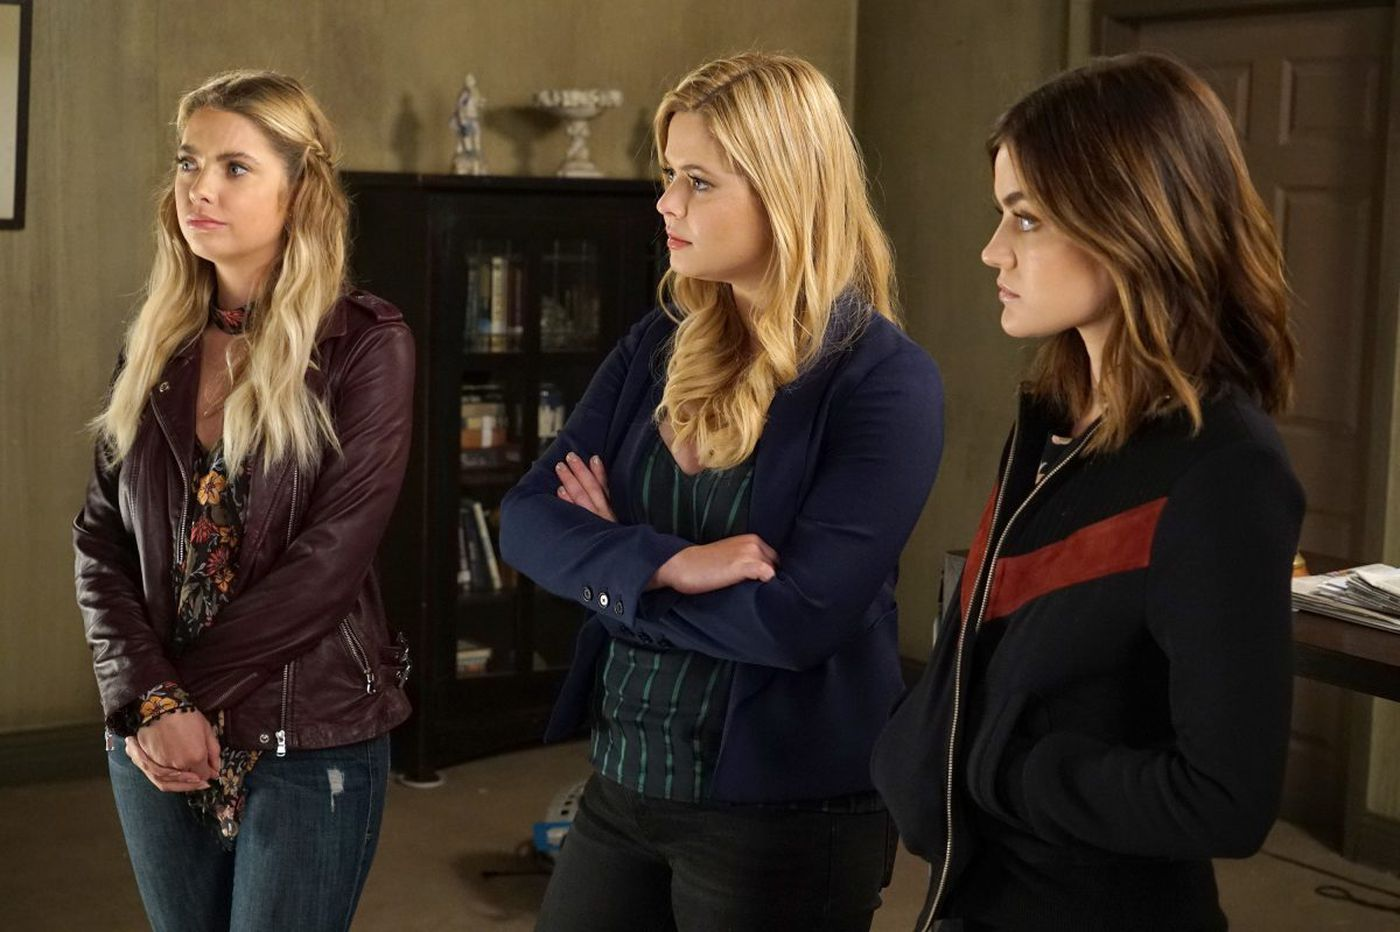 'Pretty Little Liars' maybe wasn't set on the Main Line, after all